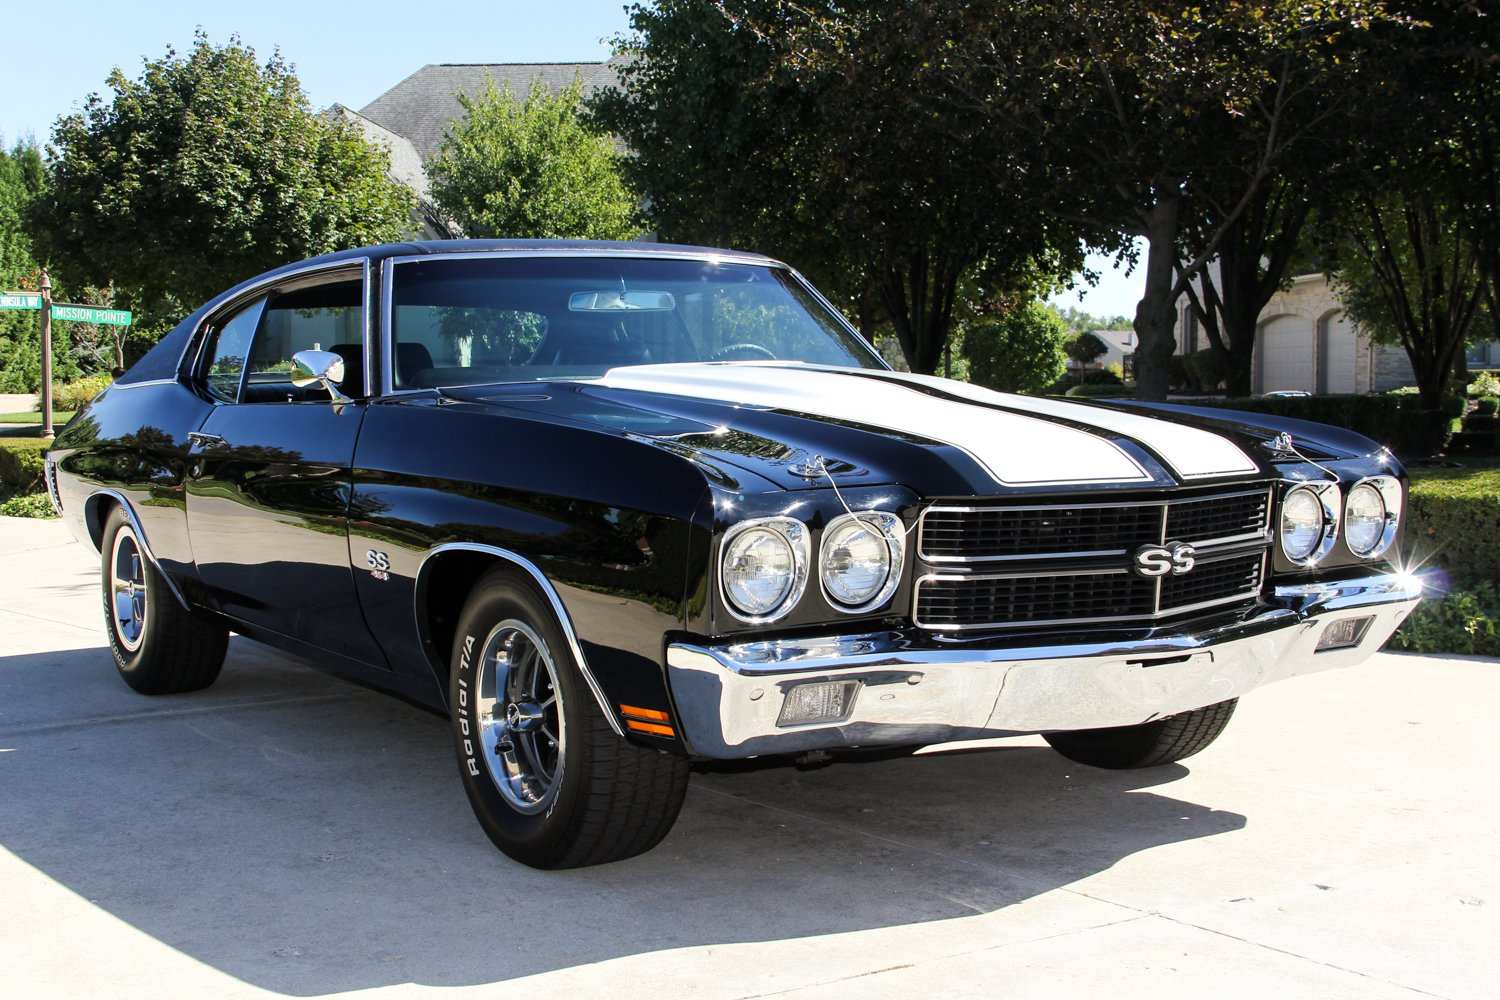 33 Concept of Chevelle Ss Specs Prices with Chevelle Ss Specs